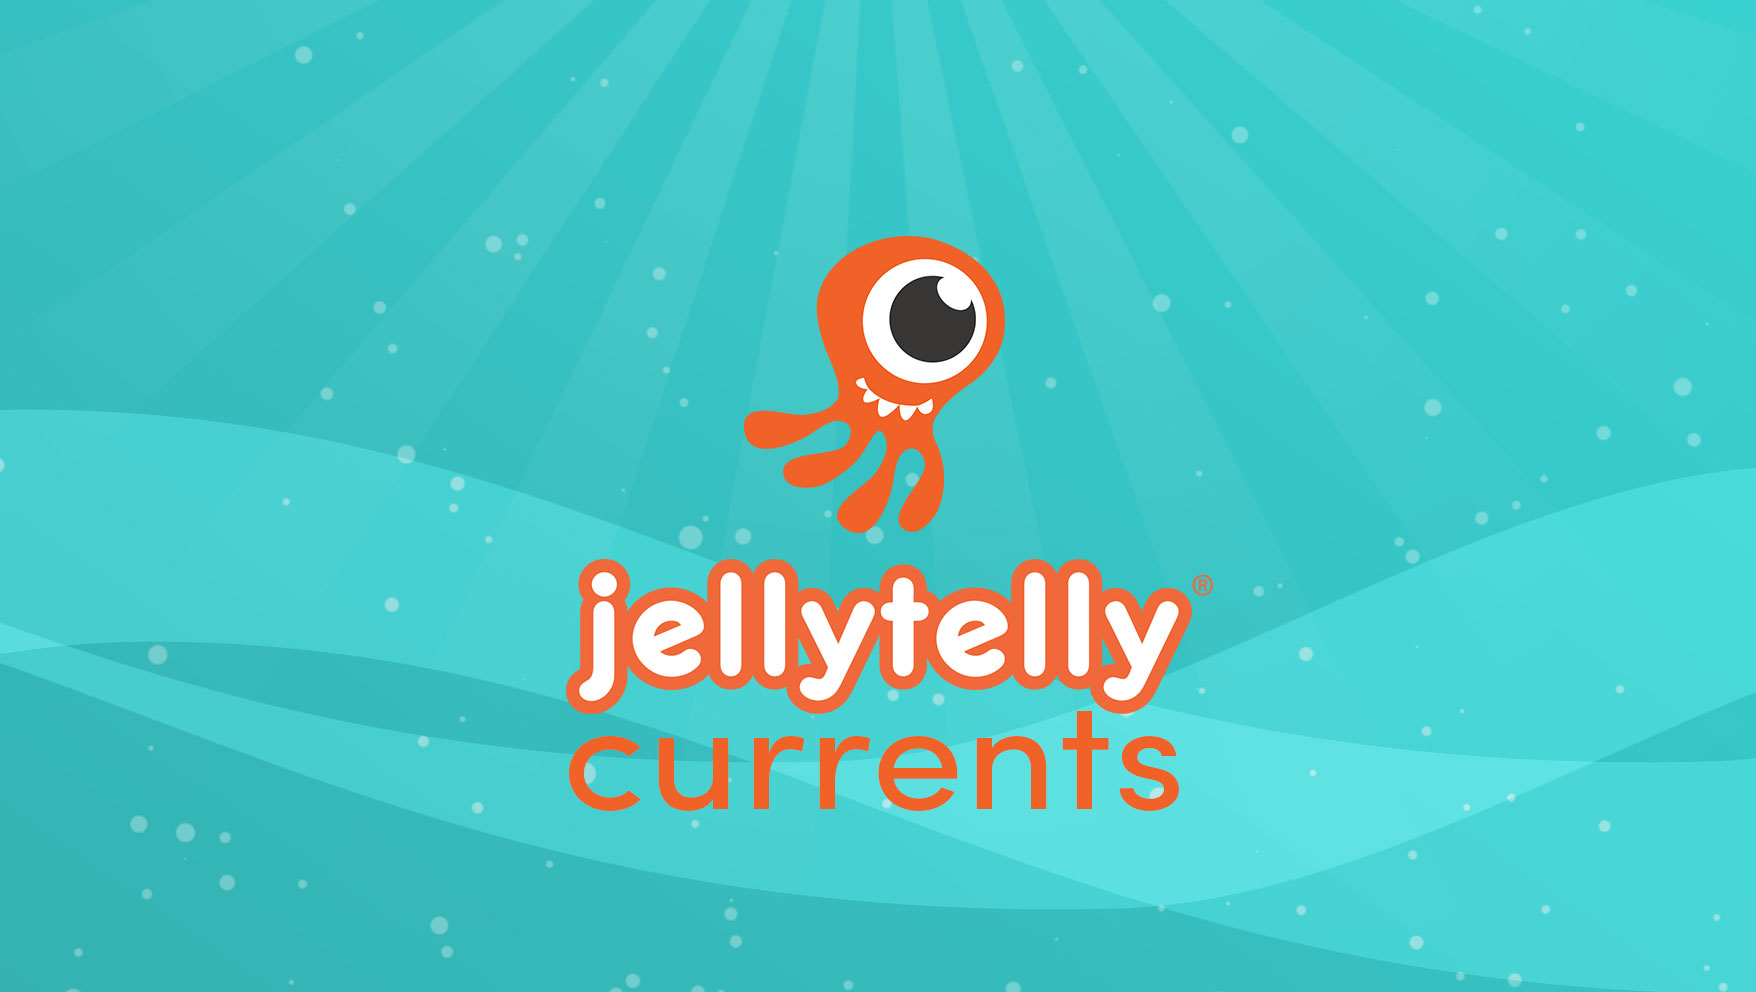 JellyTelly Currents - 9/8/17